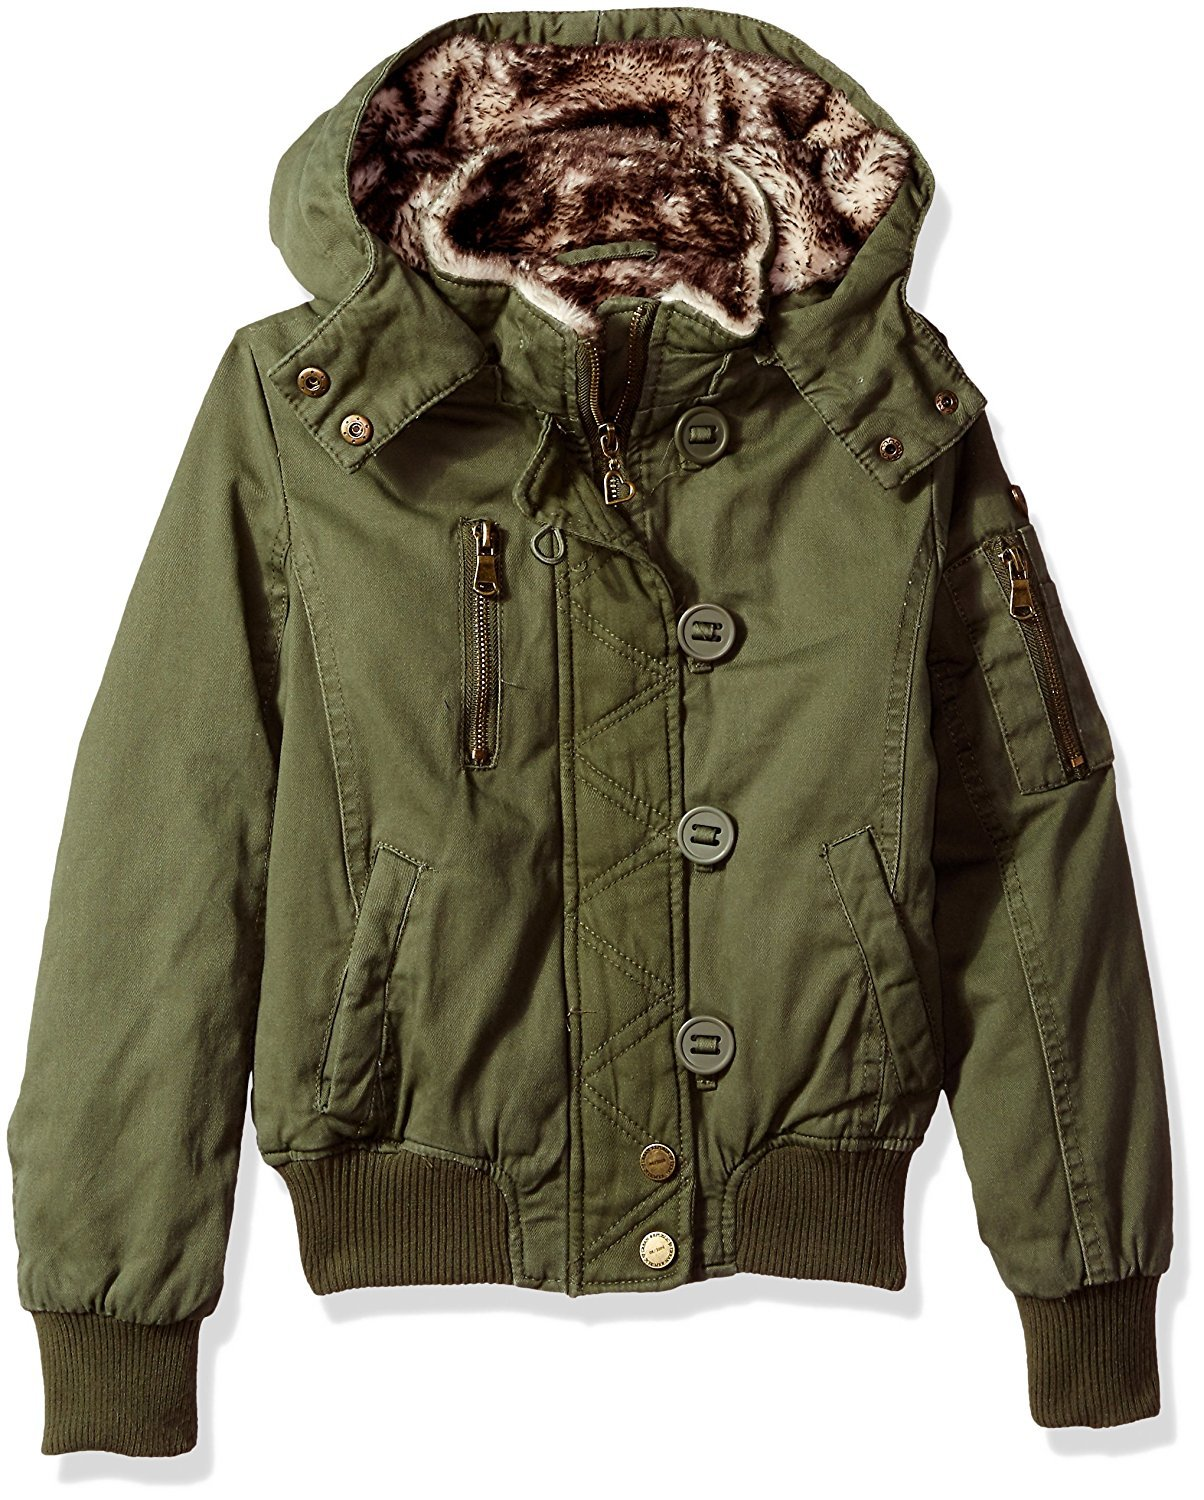 Urban Republic (5807) Girls Cotton Twill Lined Jacket with Hood in Olive Size: 16